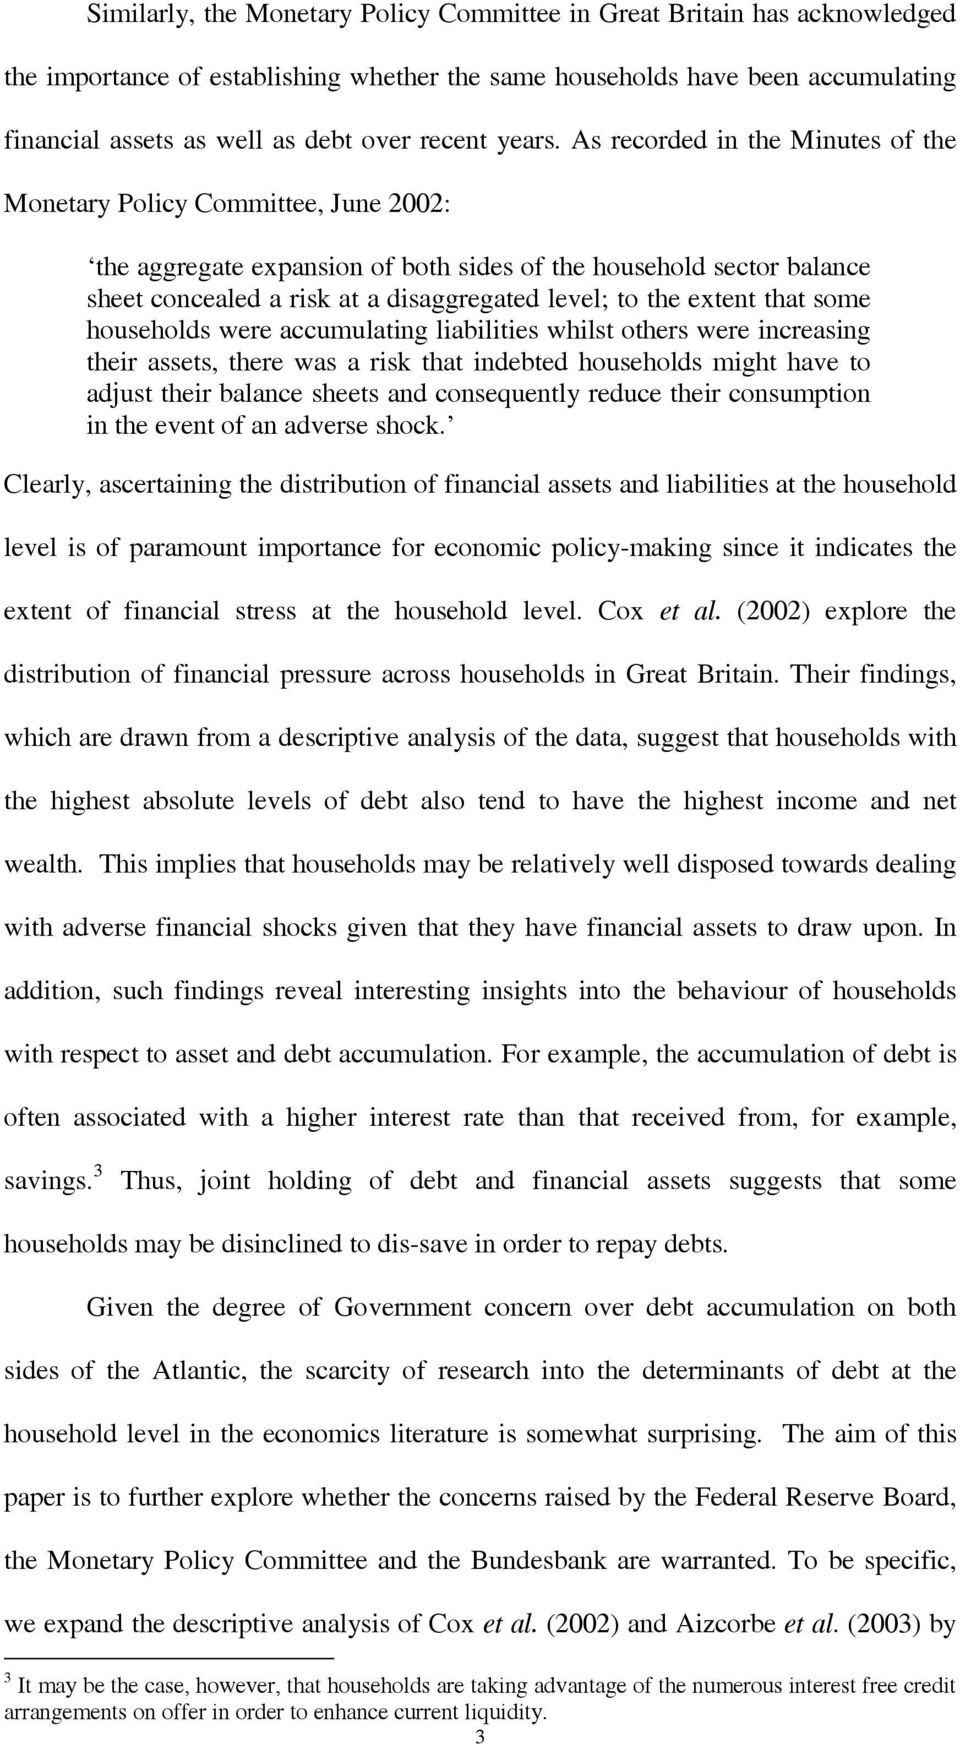 some ouseolds were accumulating liabilities wilst oters were increasing teir assets, tere was a risk tat indebted ouseolds migt ave to adjust teir balance seets and consequently reduce teir